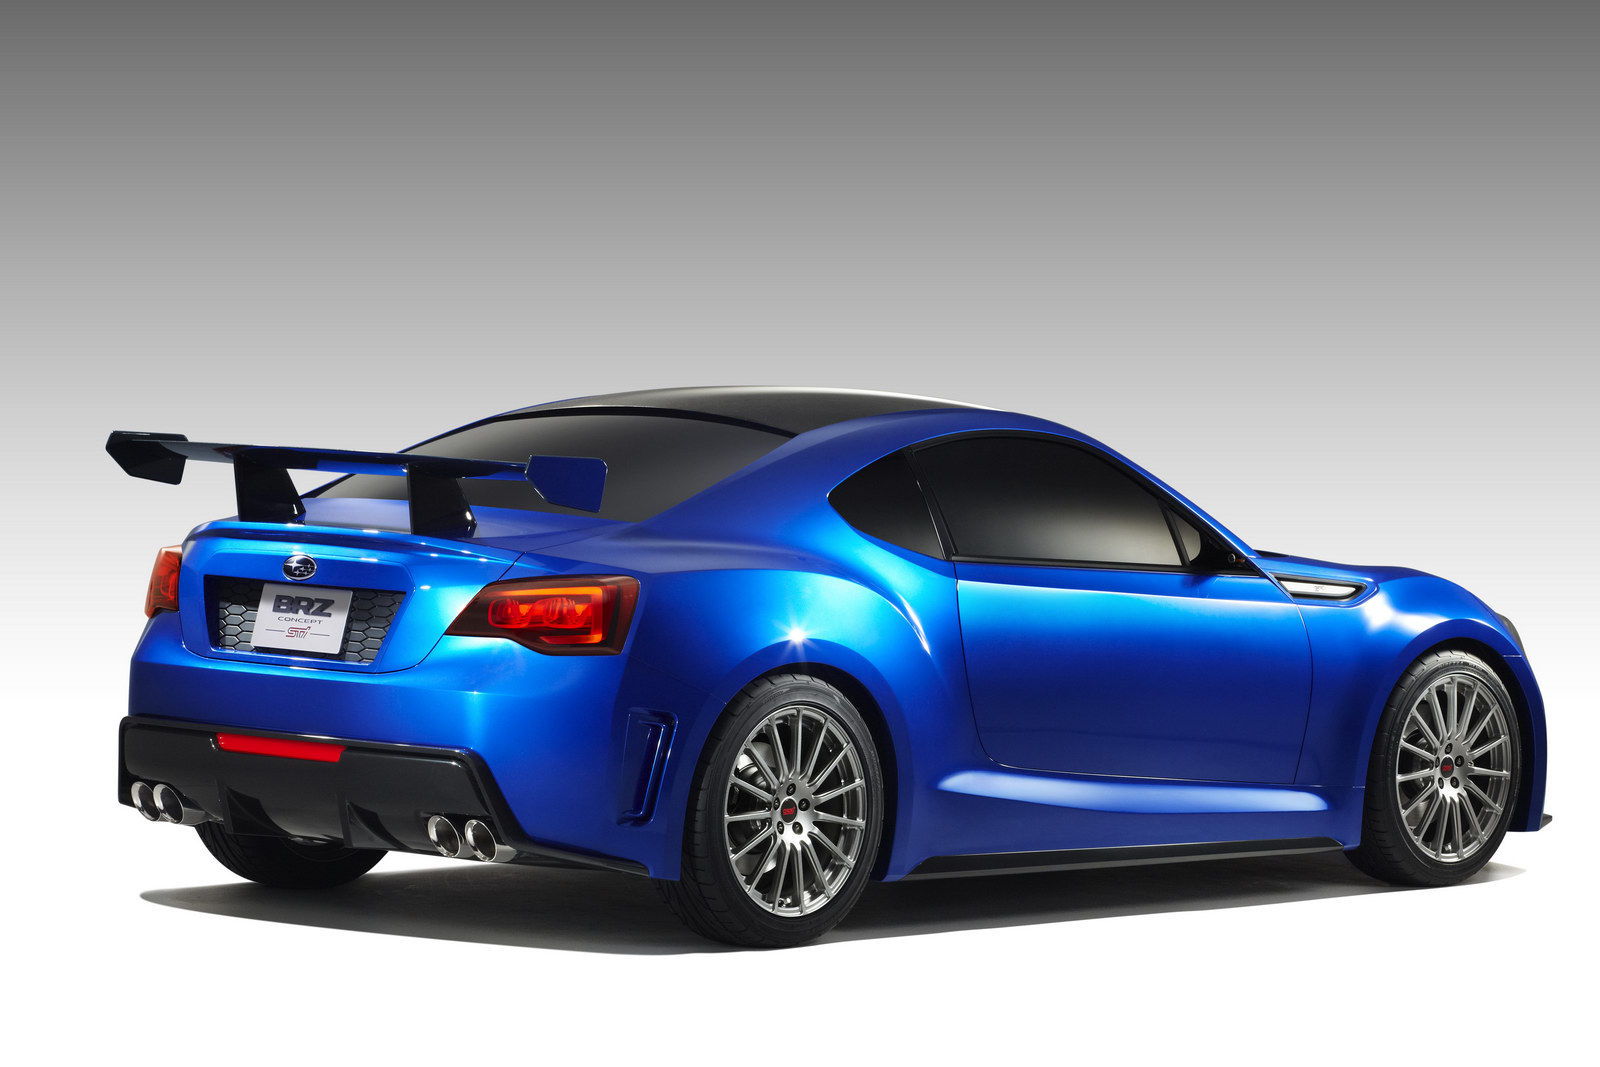 2017 Subaru BRZ STI Concept photo - 4